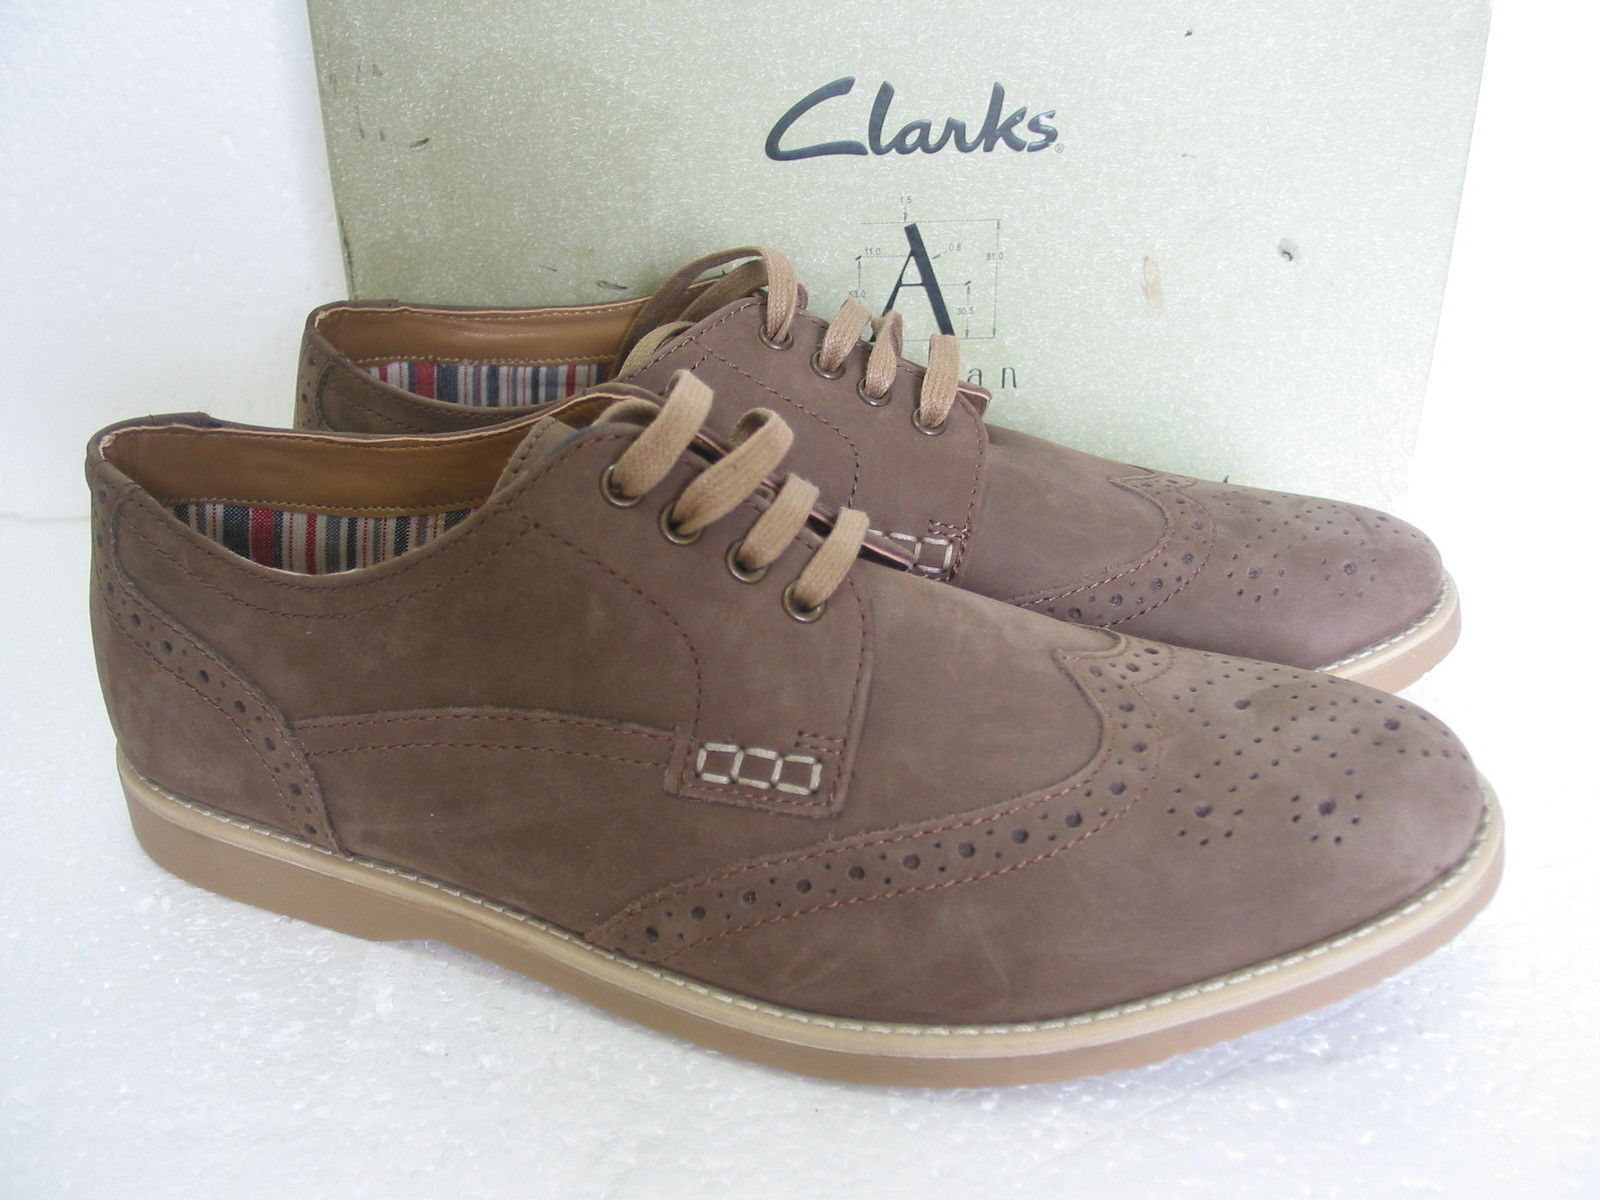 NEW CLARKS FUSE LIMIT LEATHER BROGUES LACE UP SHOES SIZE 7.5 & 8 & 10 G